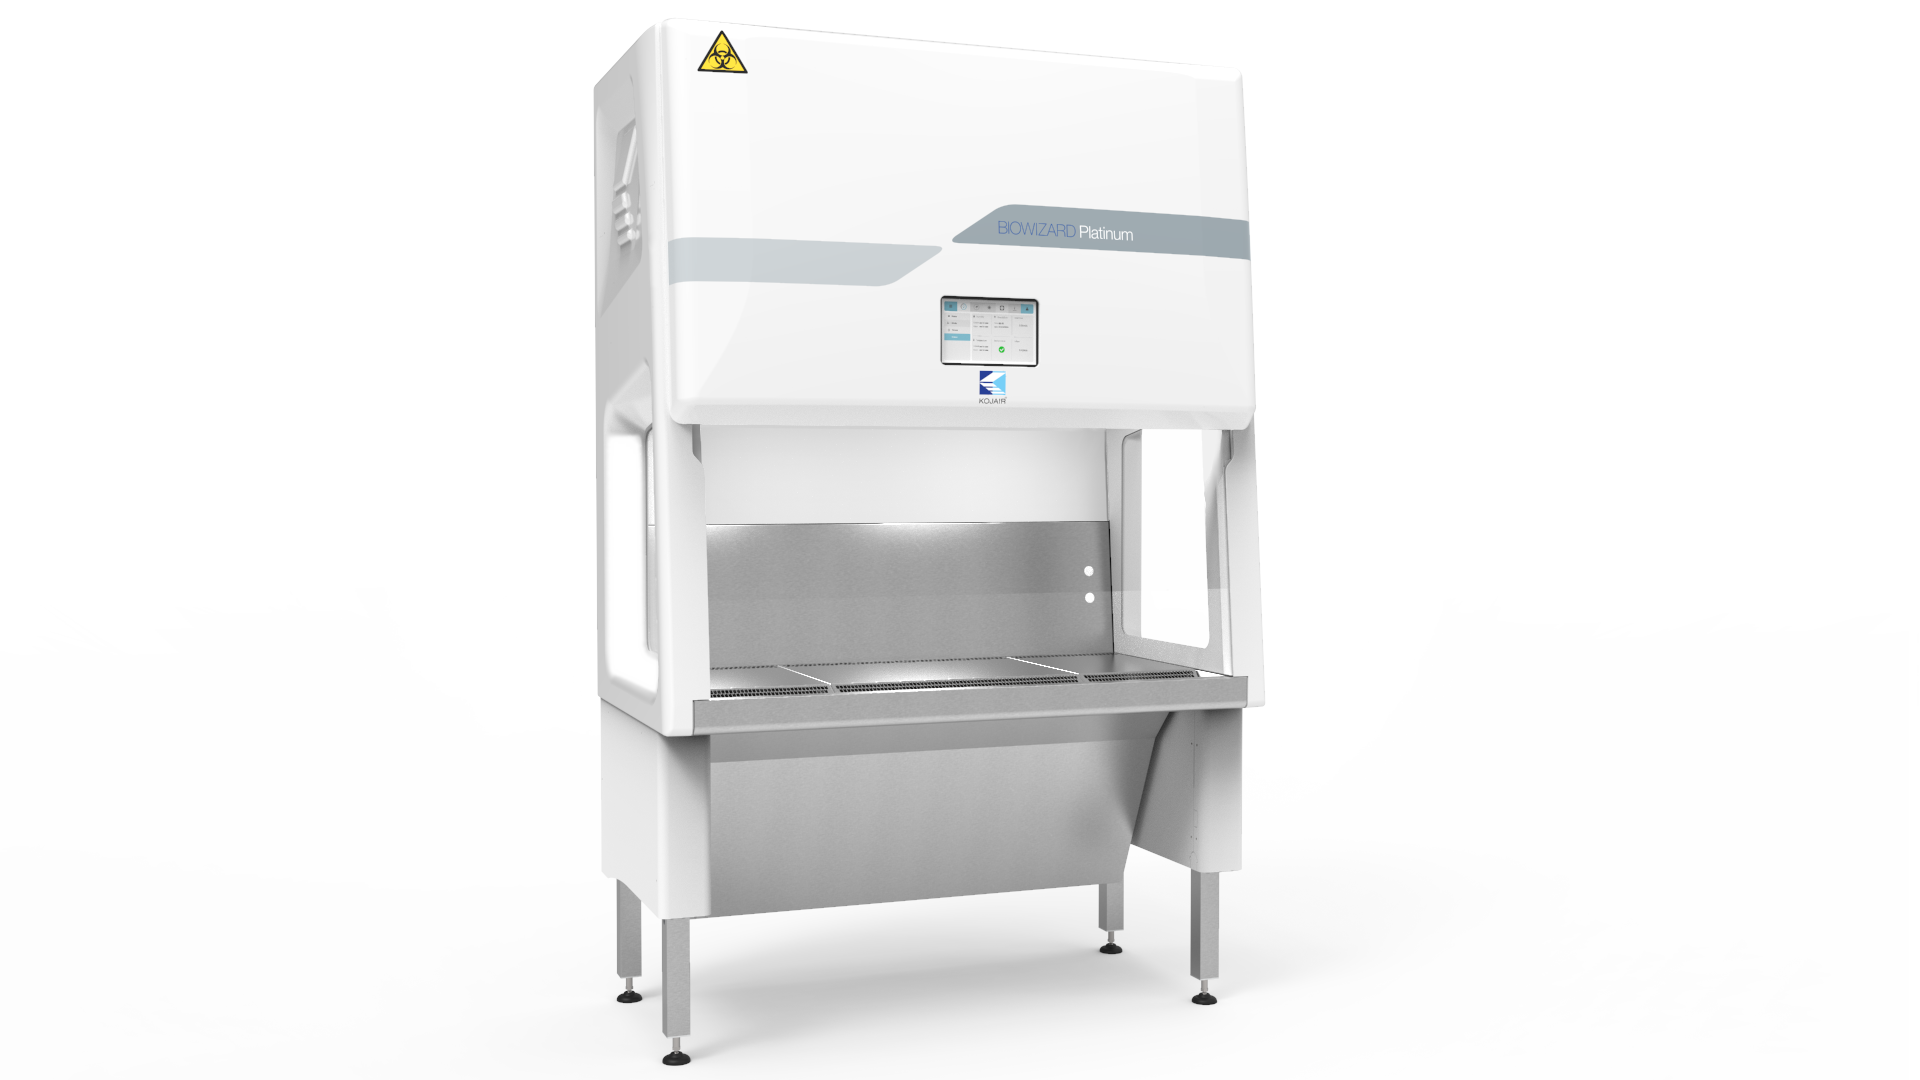 Platinum XL biosafety cabinet- micobiological safety cabinet class 2 for cytotoxic with HEPA pre-filters